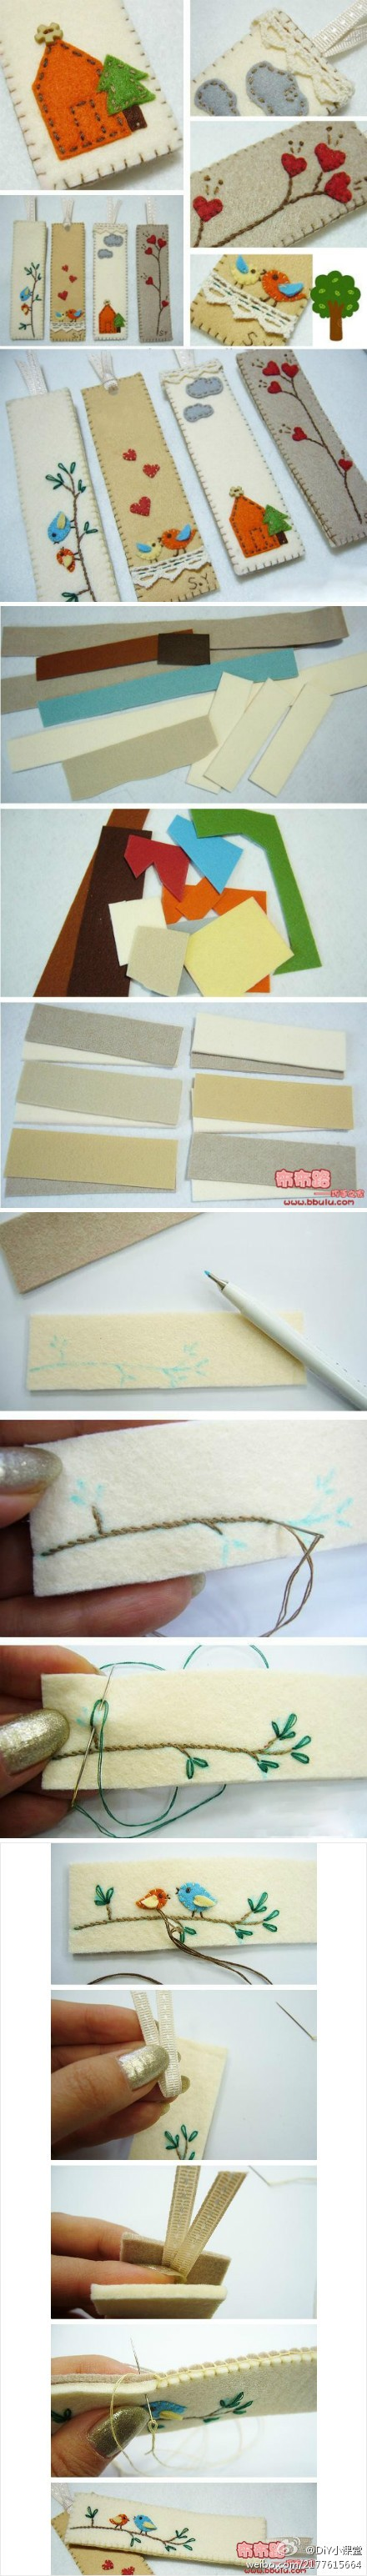 How to make cute DIY bookmarks step by step tutorial instructions